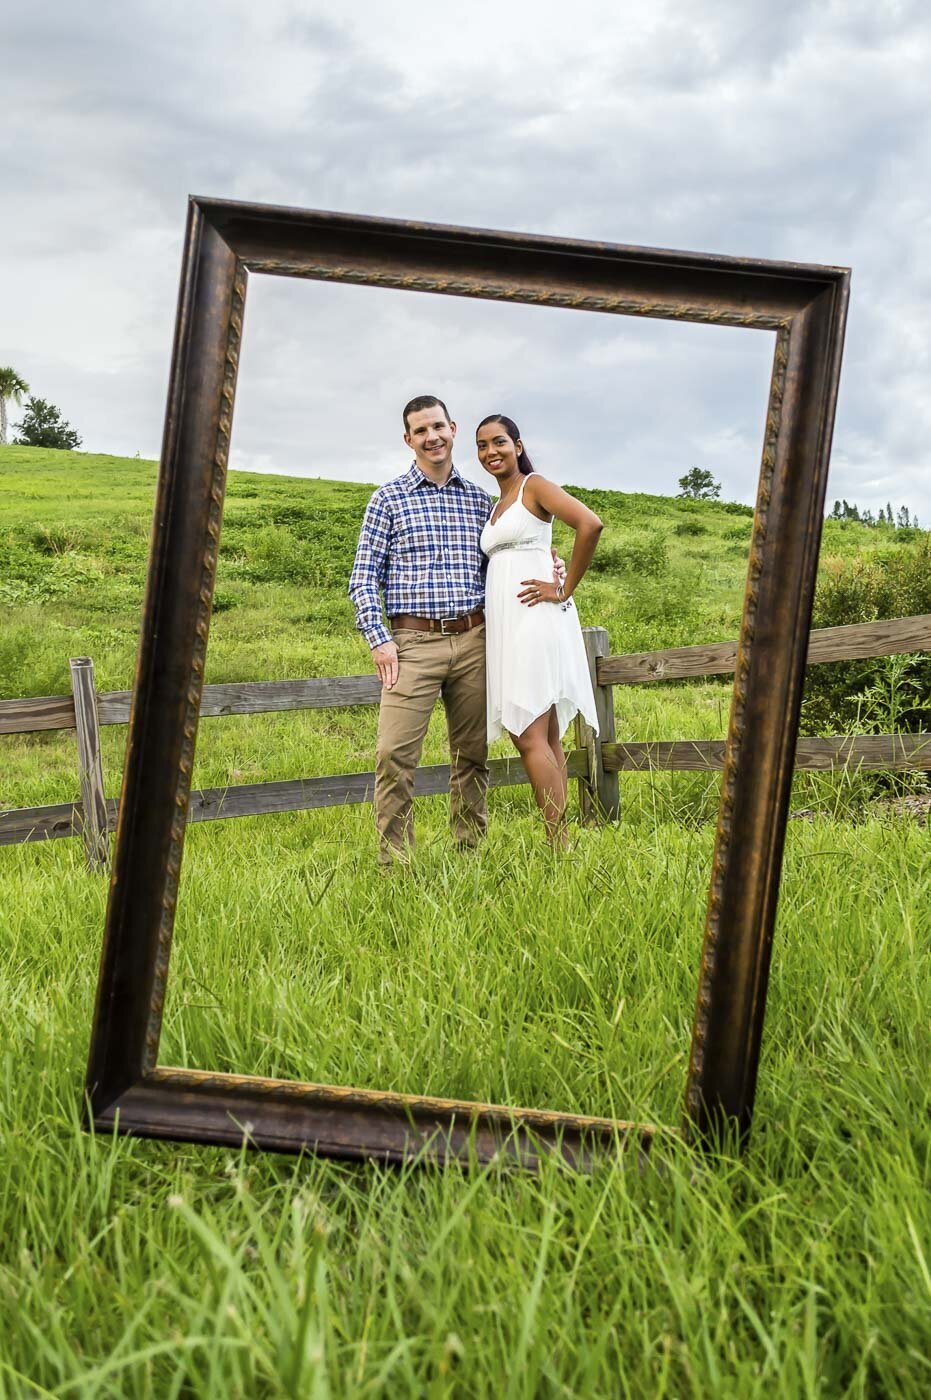 Engaged couple poses framed by a large wooden frame